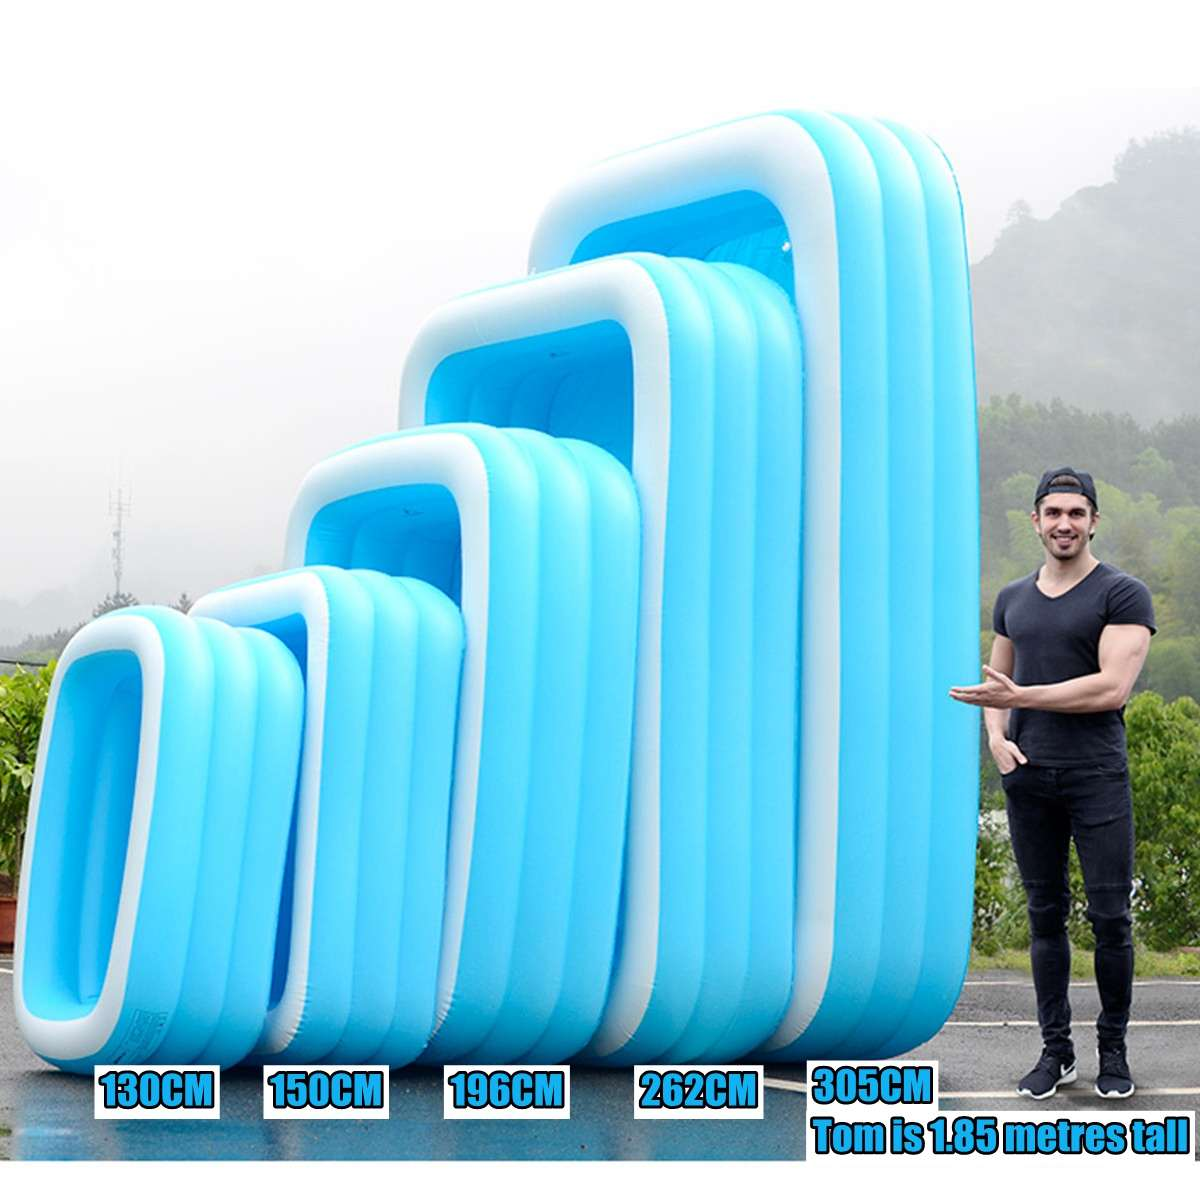 Thicken Inflatable Swimming Pool Adults Kids Pool Bathing Tub Outdoor Indoor Swimming Pool Nflatable Bathtub 110cm-305cm